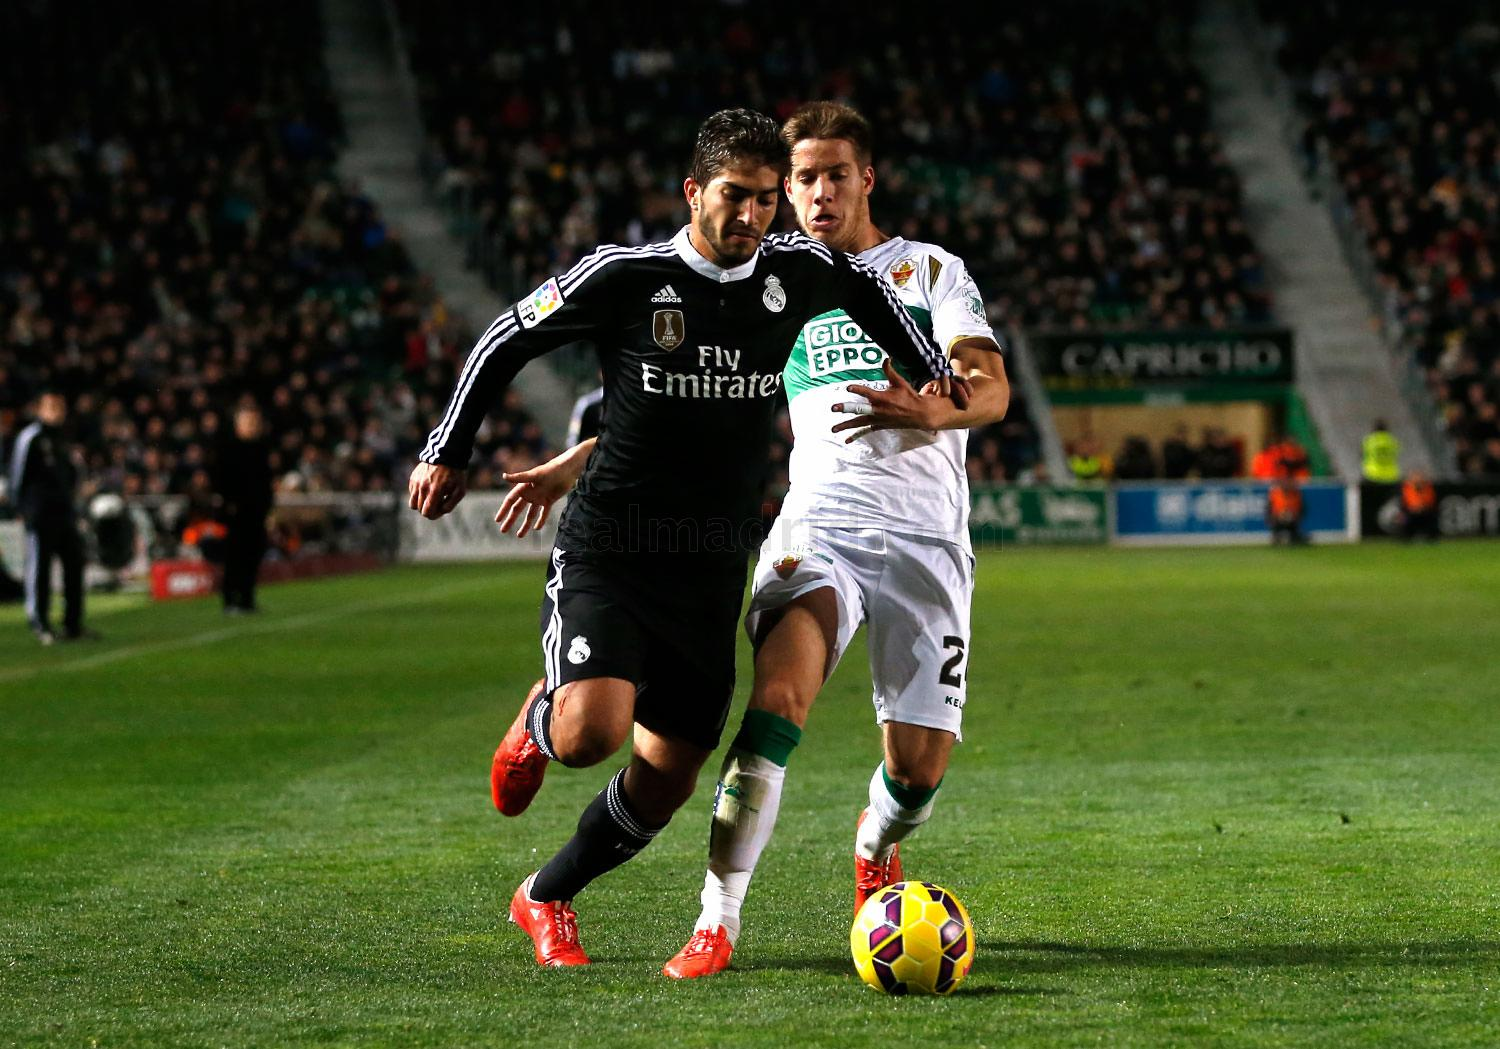 Real Madrid - Elche - Real Madrid - 22-02-2015